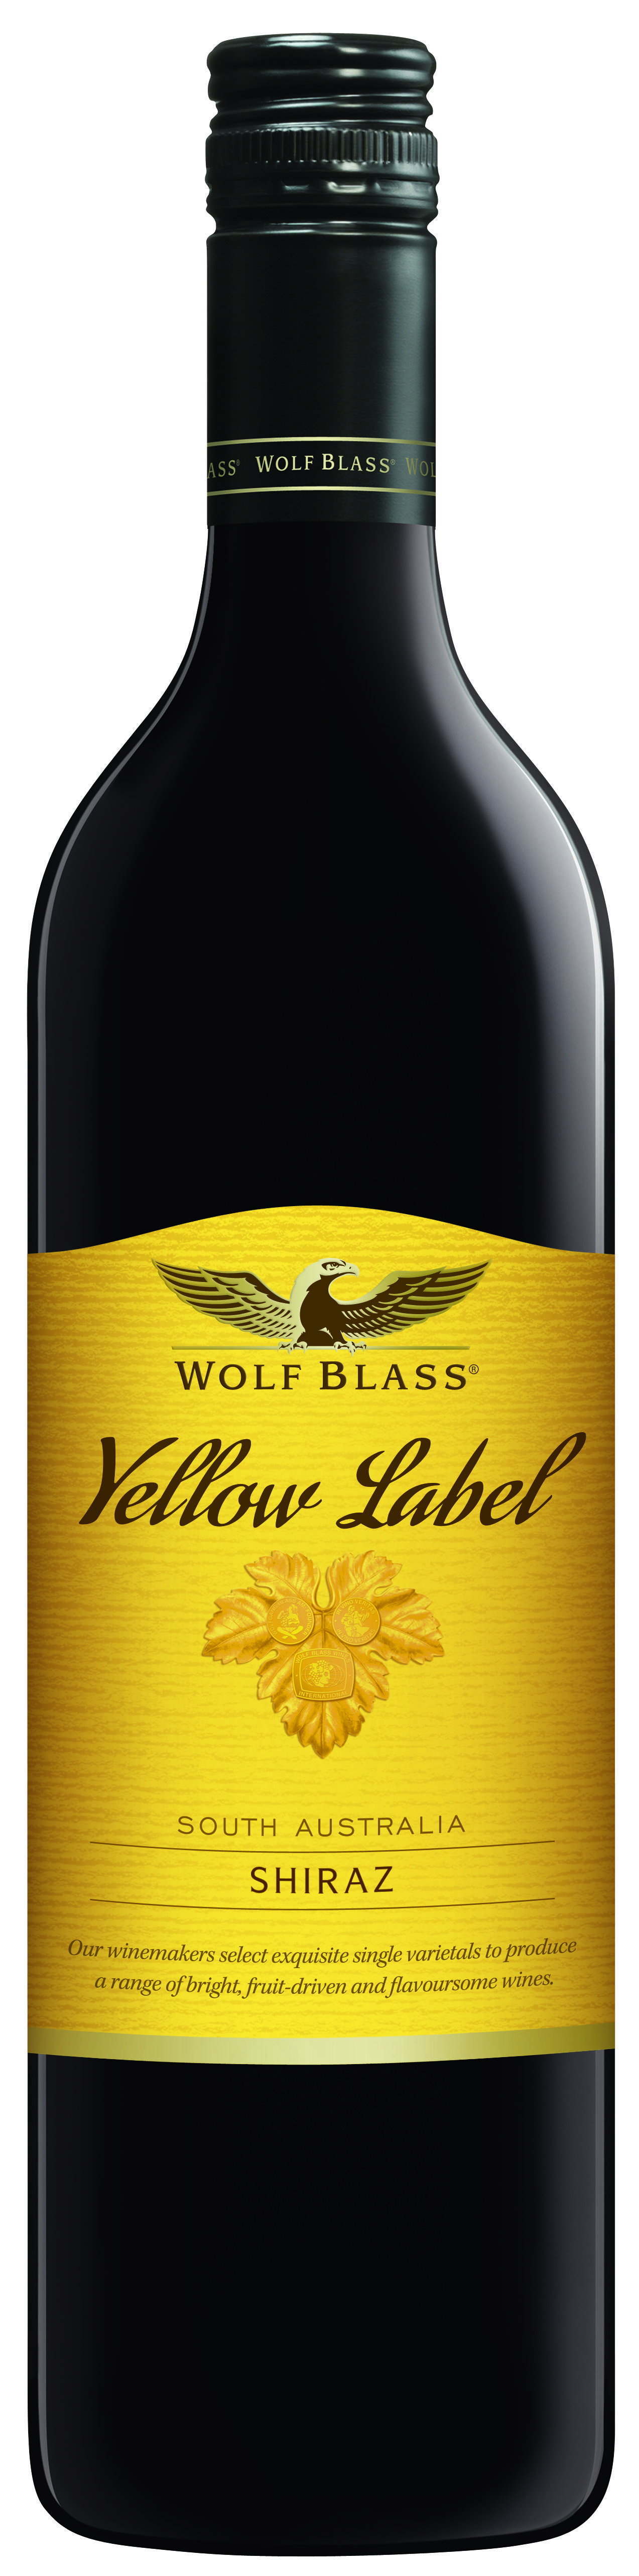 It's just an image of Witty Wolf Blass Grey Label Shiraz 2013 Review